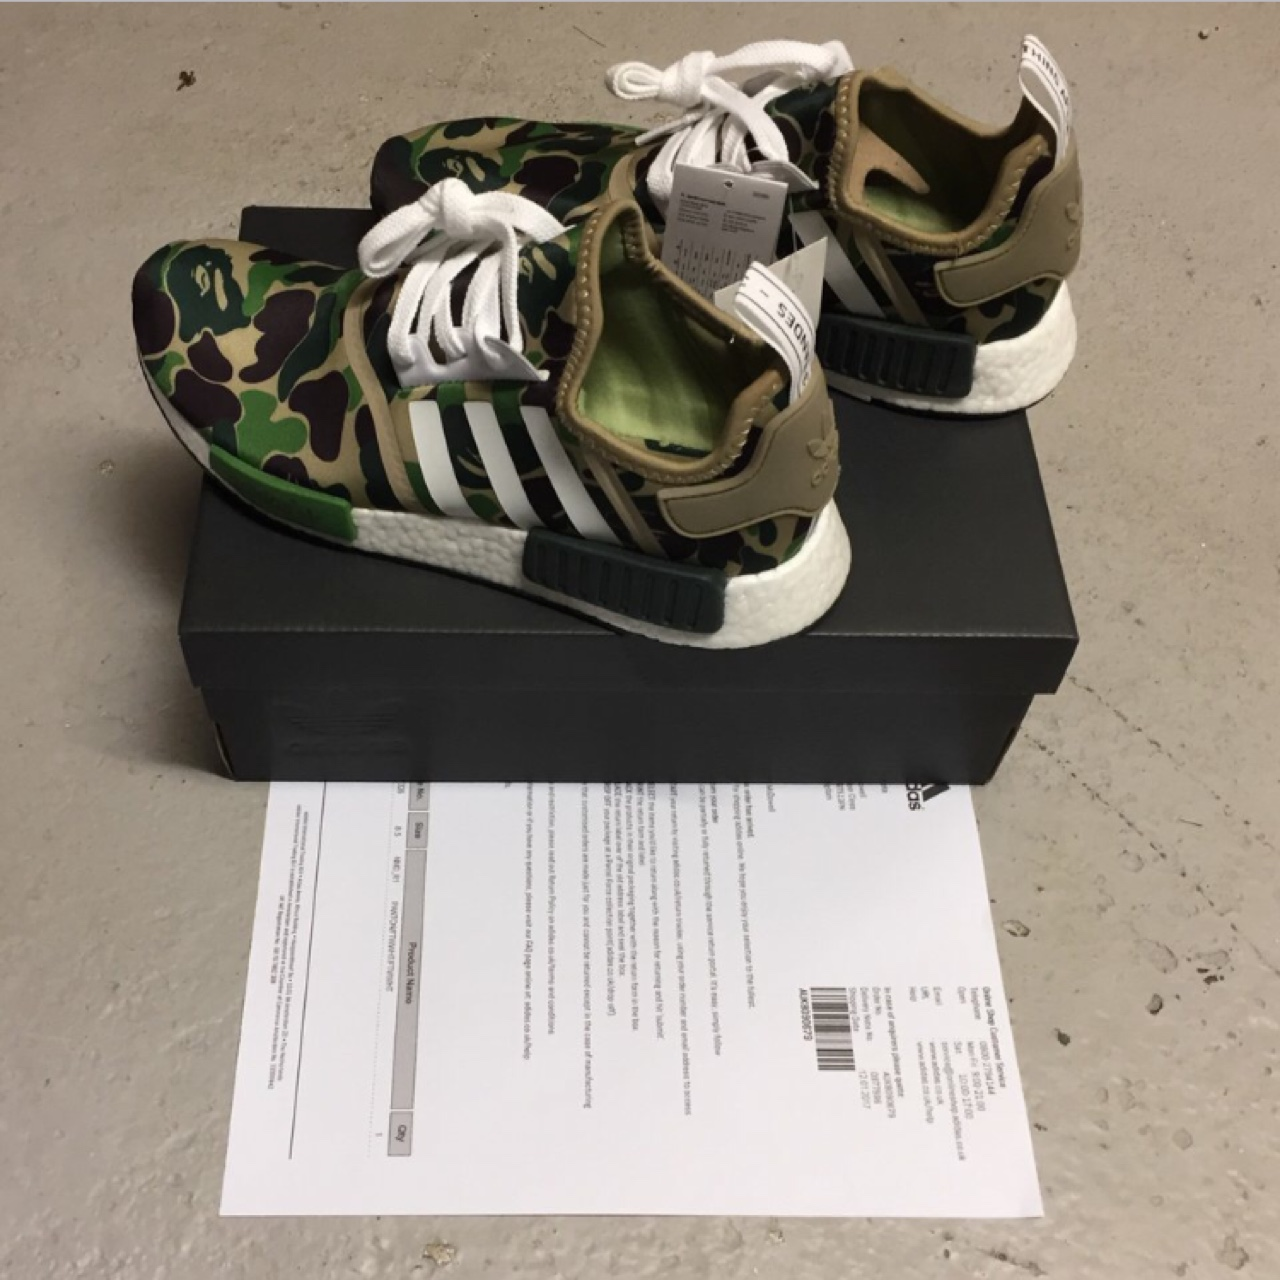 BAPE x ADIDAS NMD R1 SIZE UK 8.5 MORE PICTURES Depop